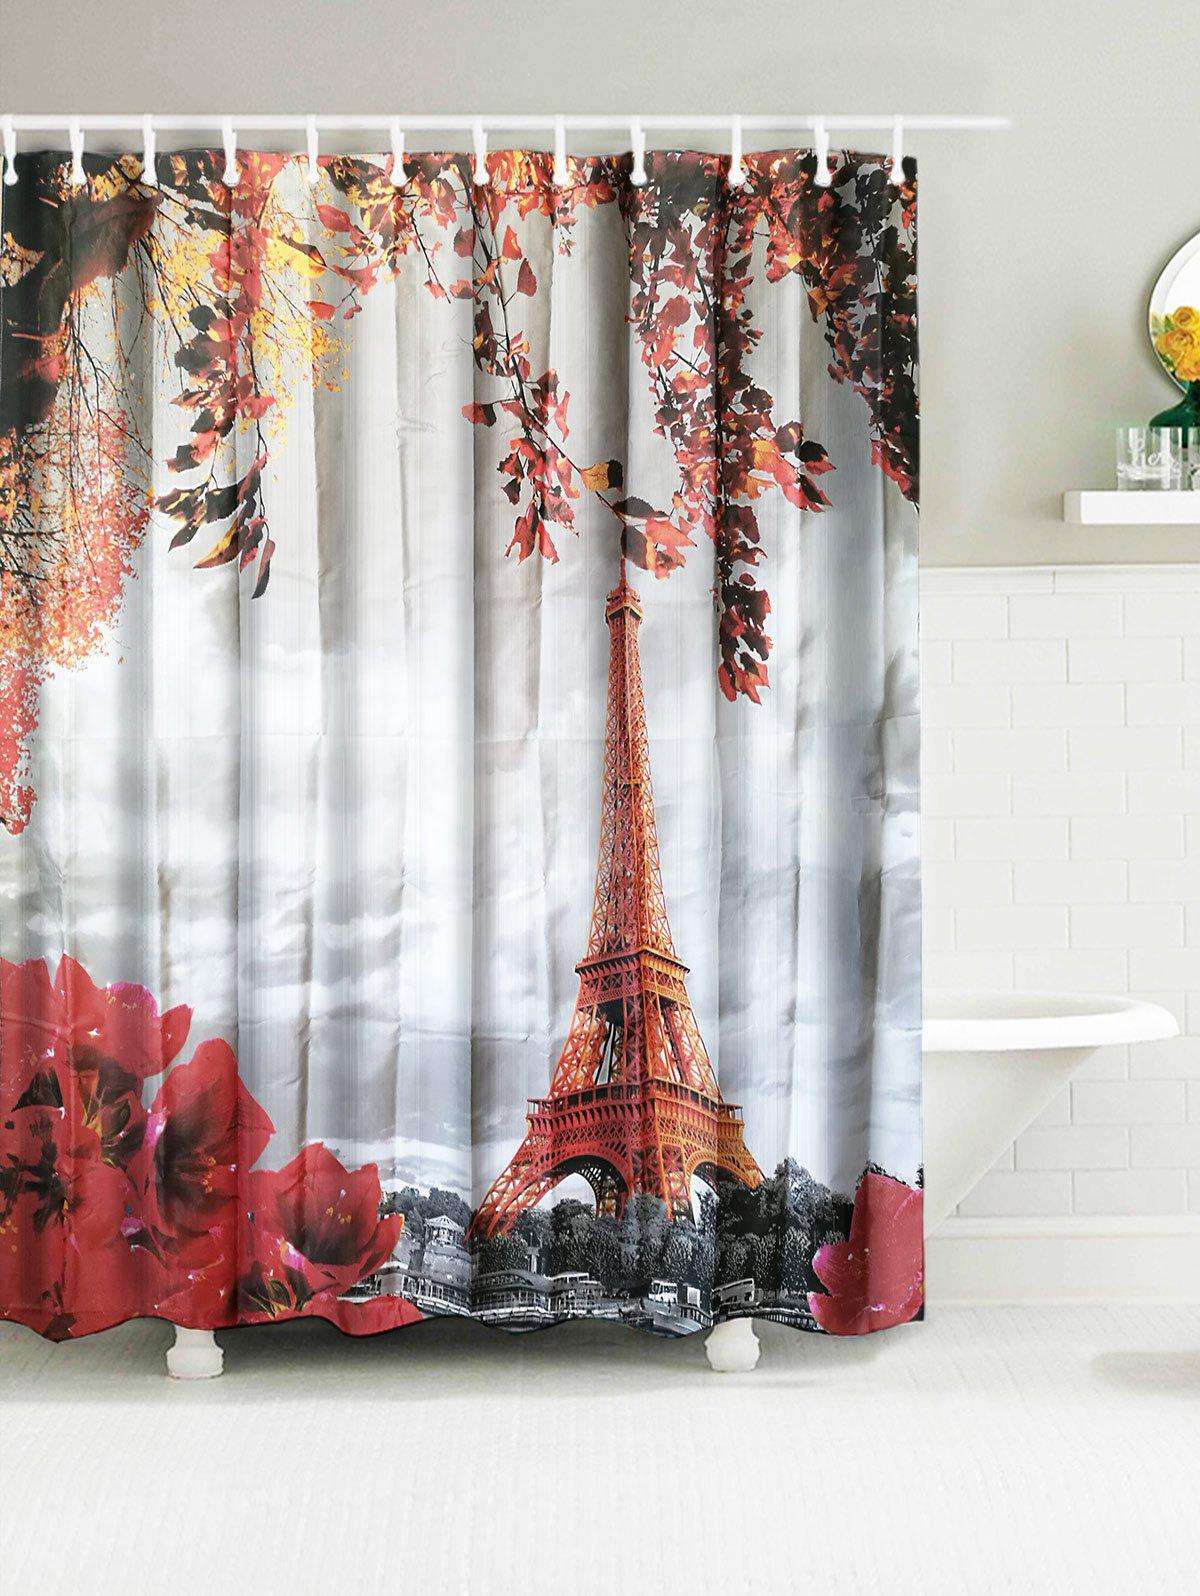 Eiffel Tower Water Resistant Fabric Shower Curtain flower butterfly mantis water resistant shower curtain